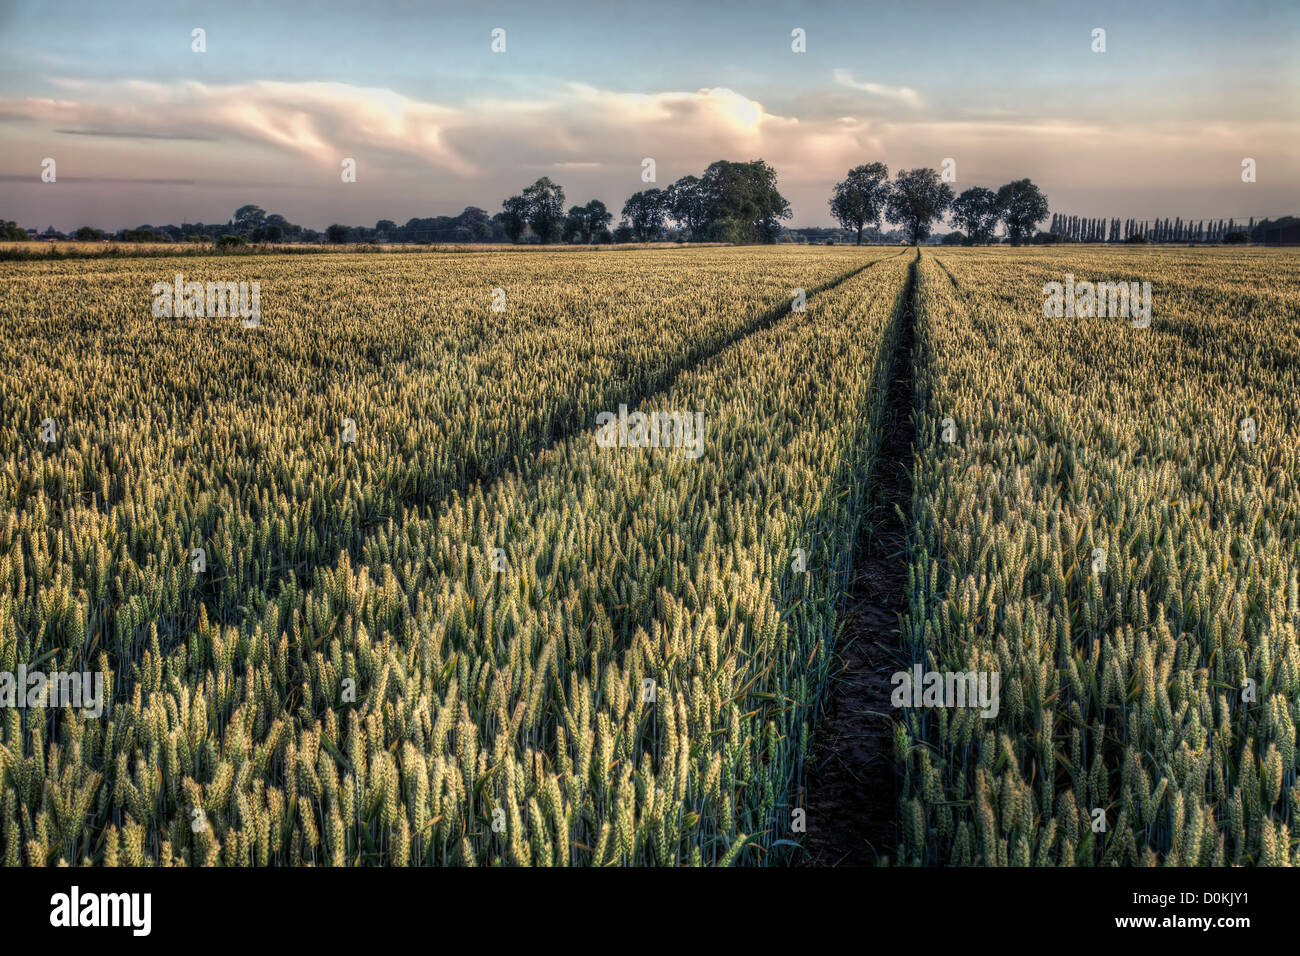 Path through a field of ripening wheat just before harvest. - Stock Image